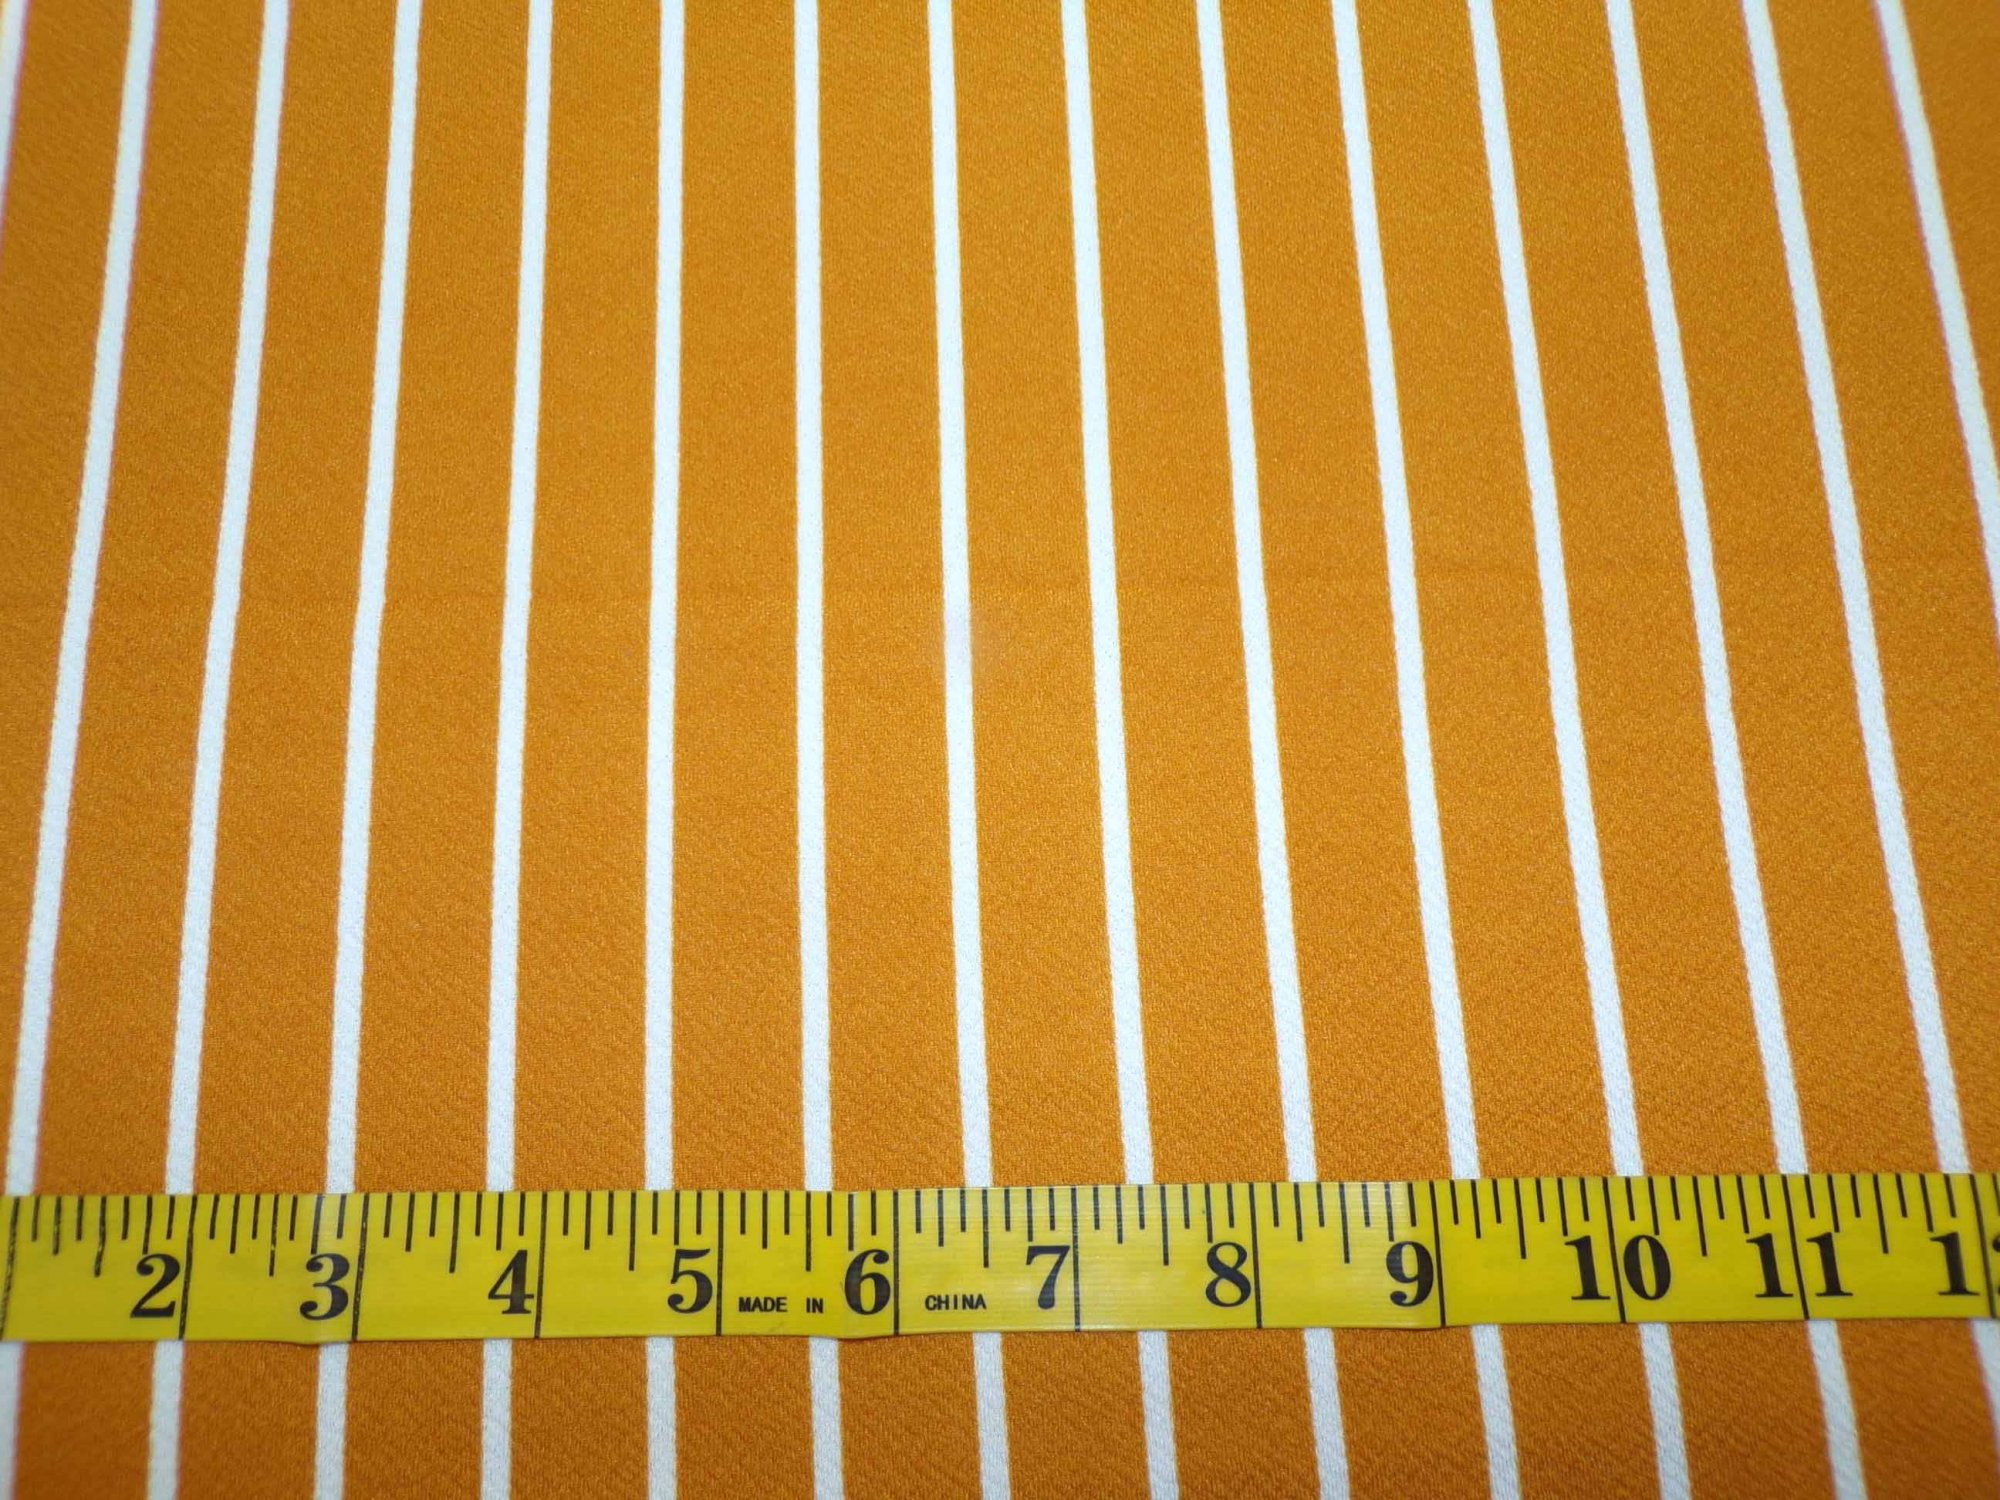 Liverpool Knit -Mustard with Vertical White Stripes